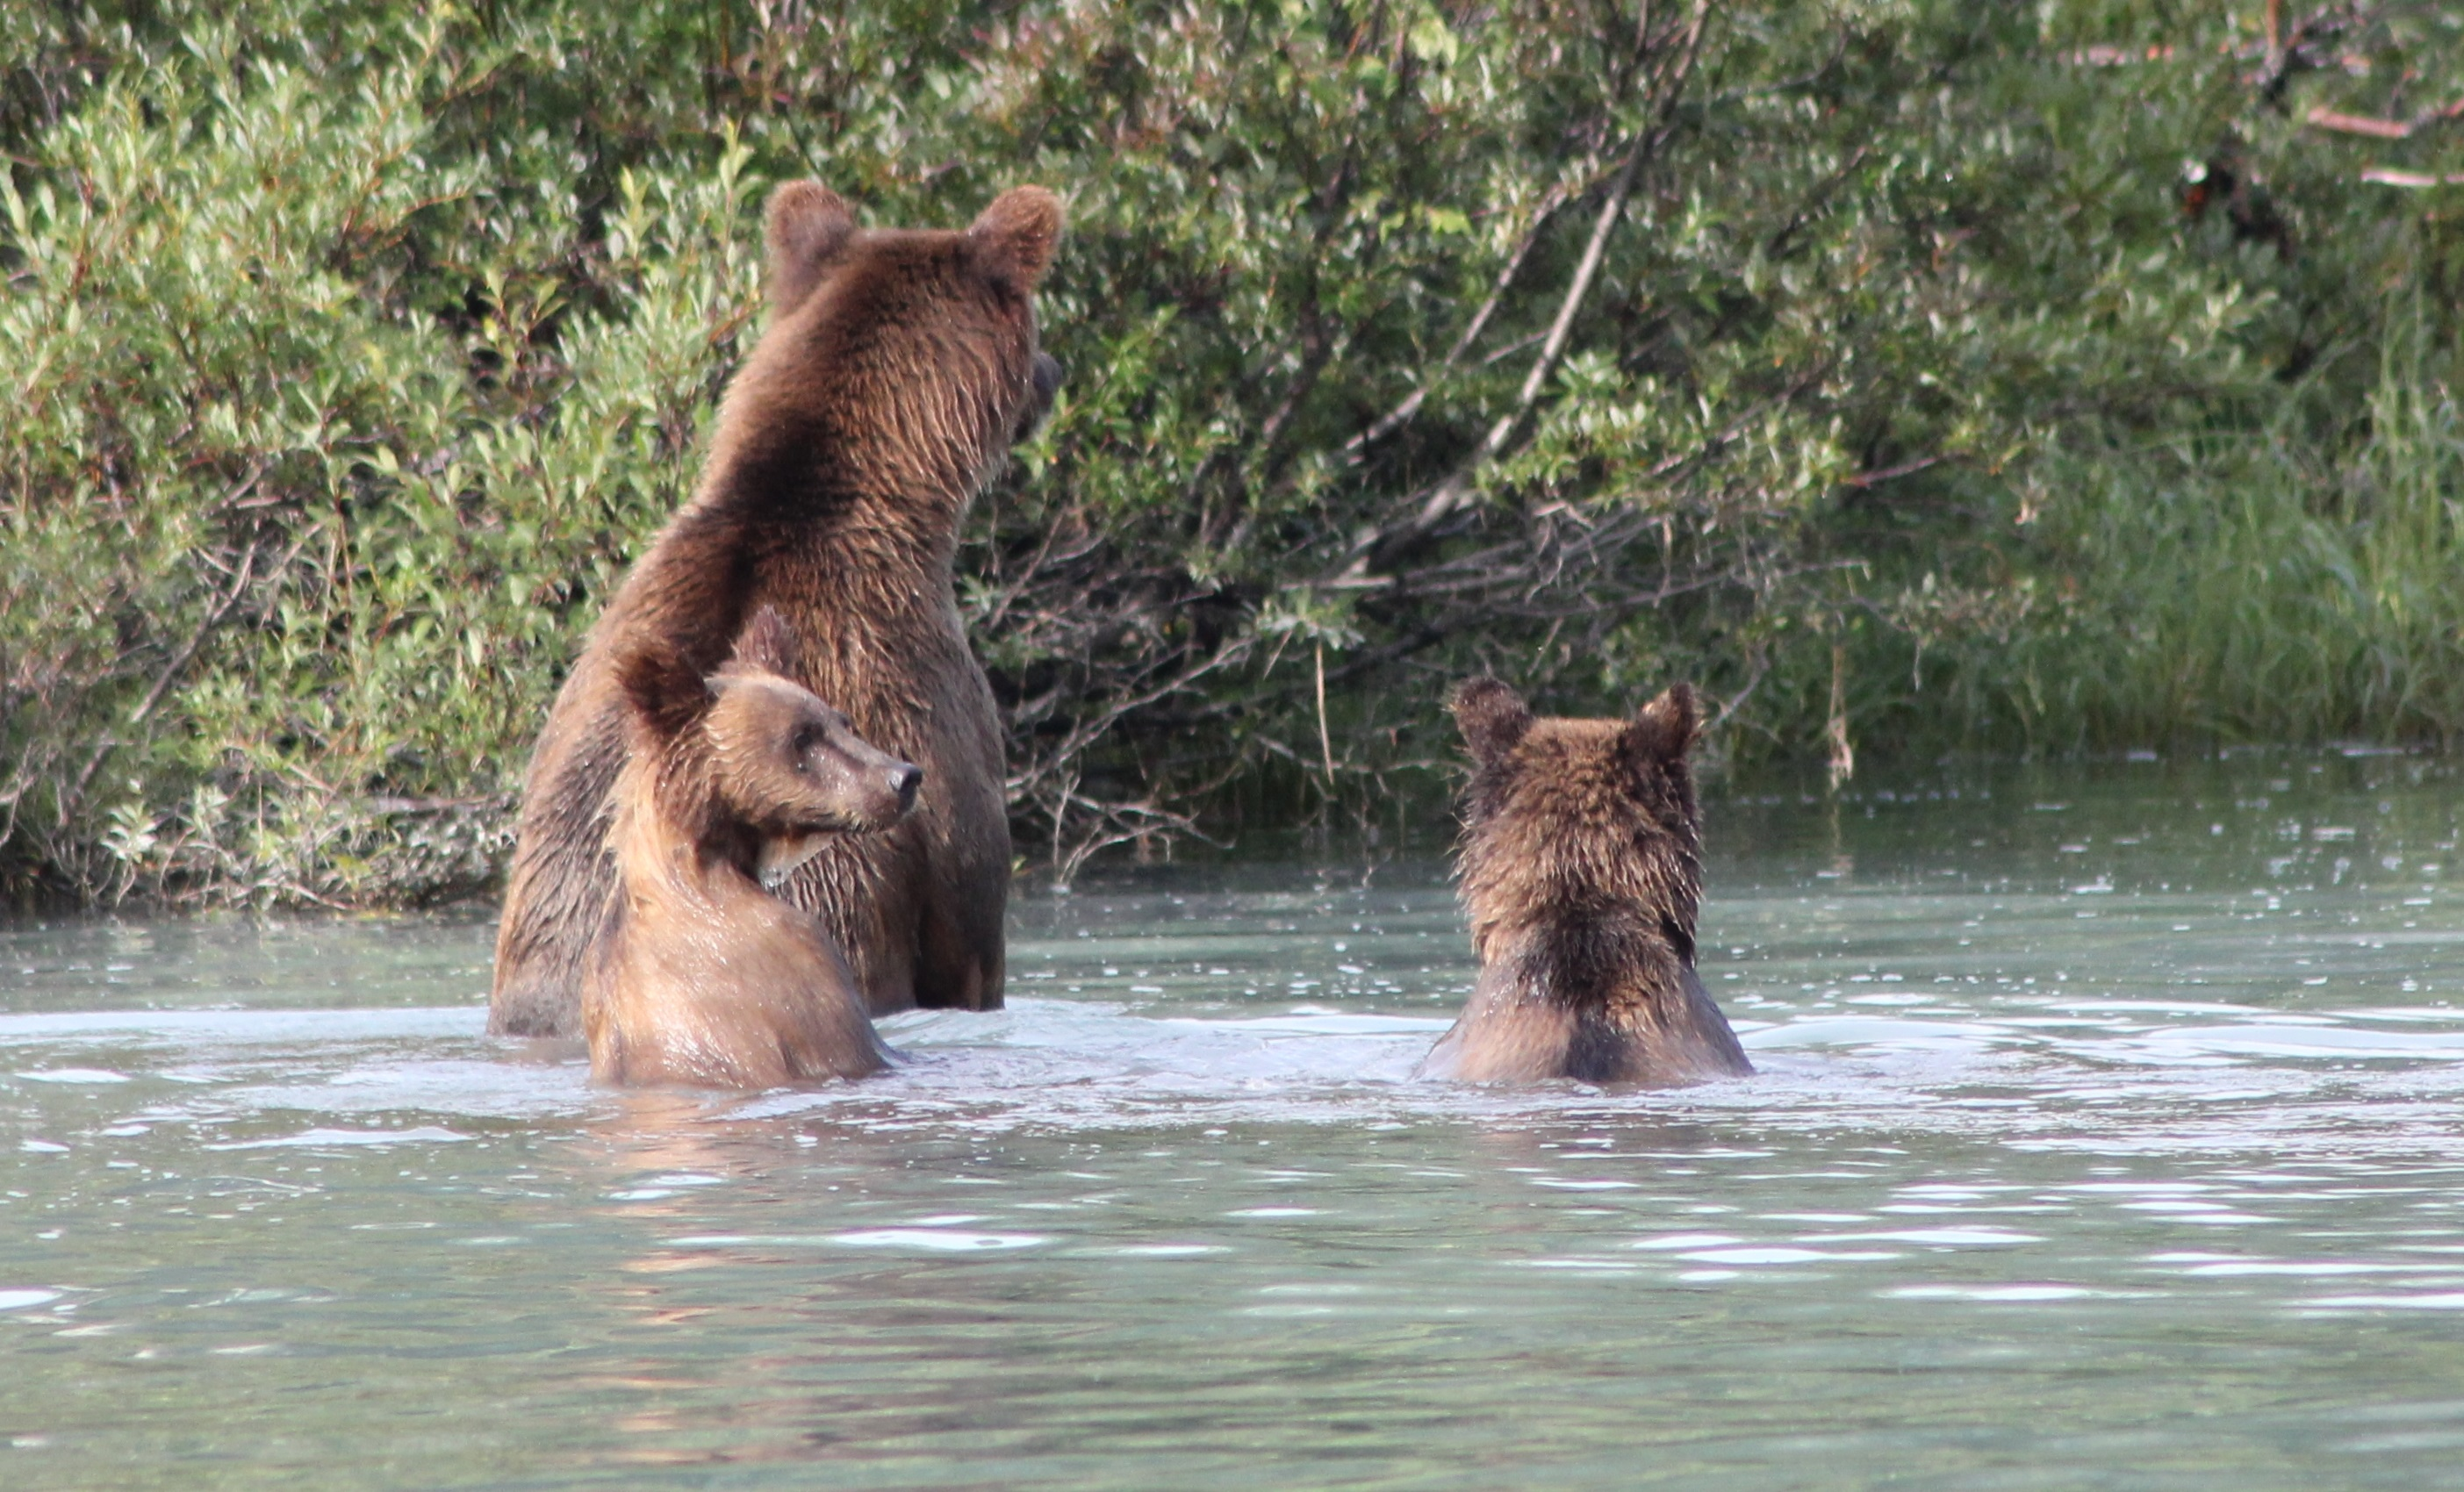 A sow with two cubs was our main viewing pleasure, as she patrolled the shoreline, taking careful regard and retreat at one point from a potential male bear threat (but ignoring us and anchored anglers), and taught her young how to fish for Sockeye Salmon in the lake's margins.